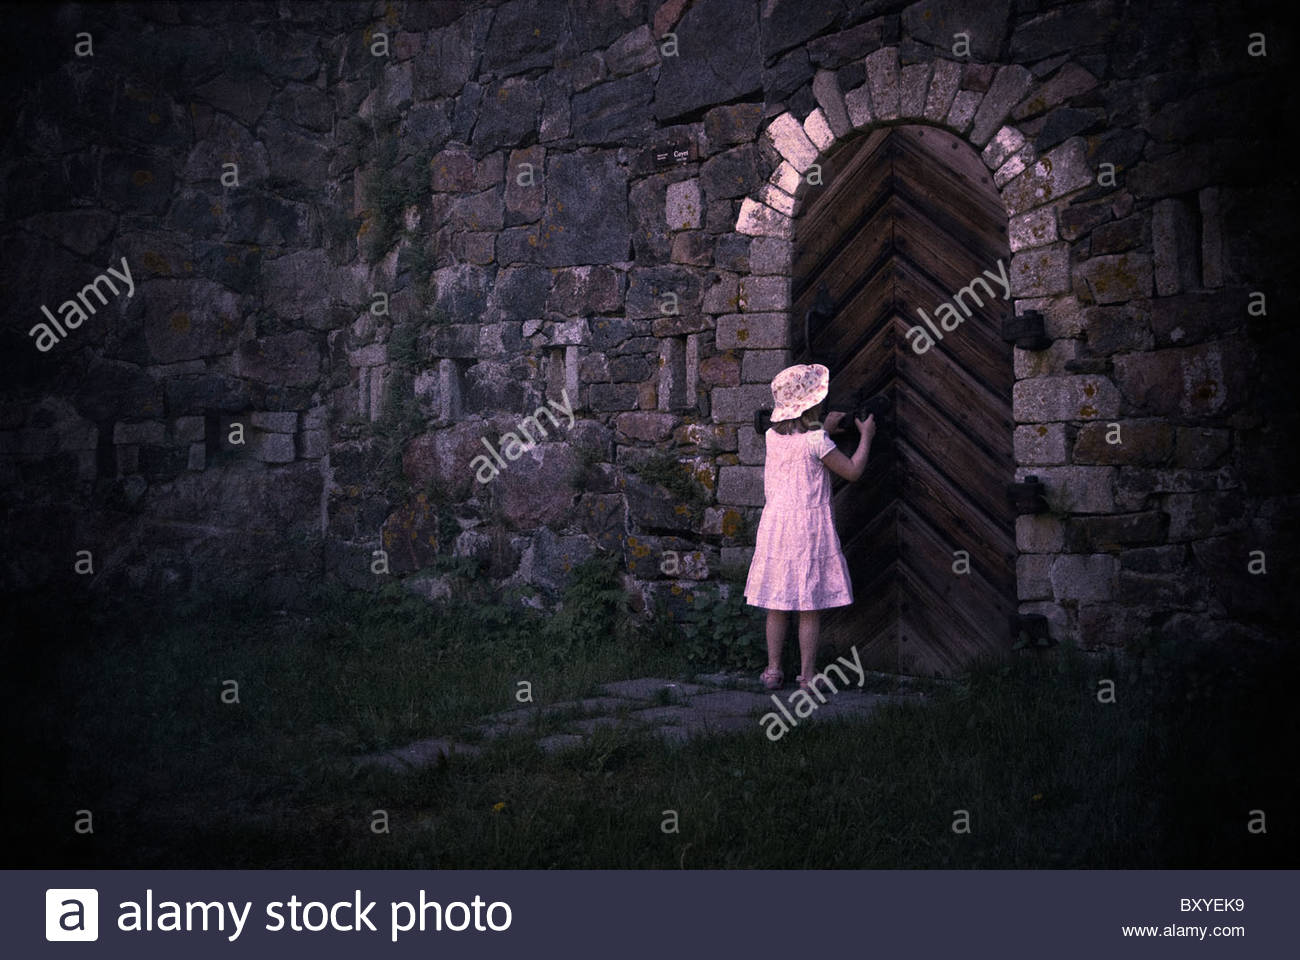 Young girl wearing a summer dress and hat opening a large wooden door in an old building - Stock Image